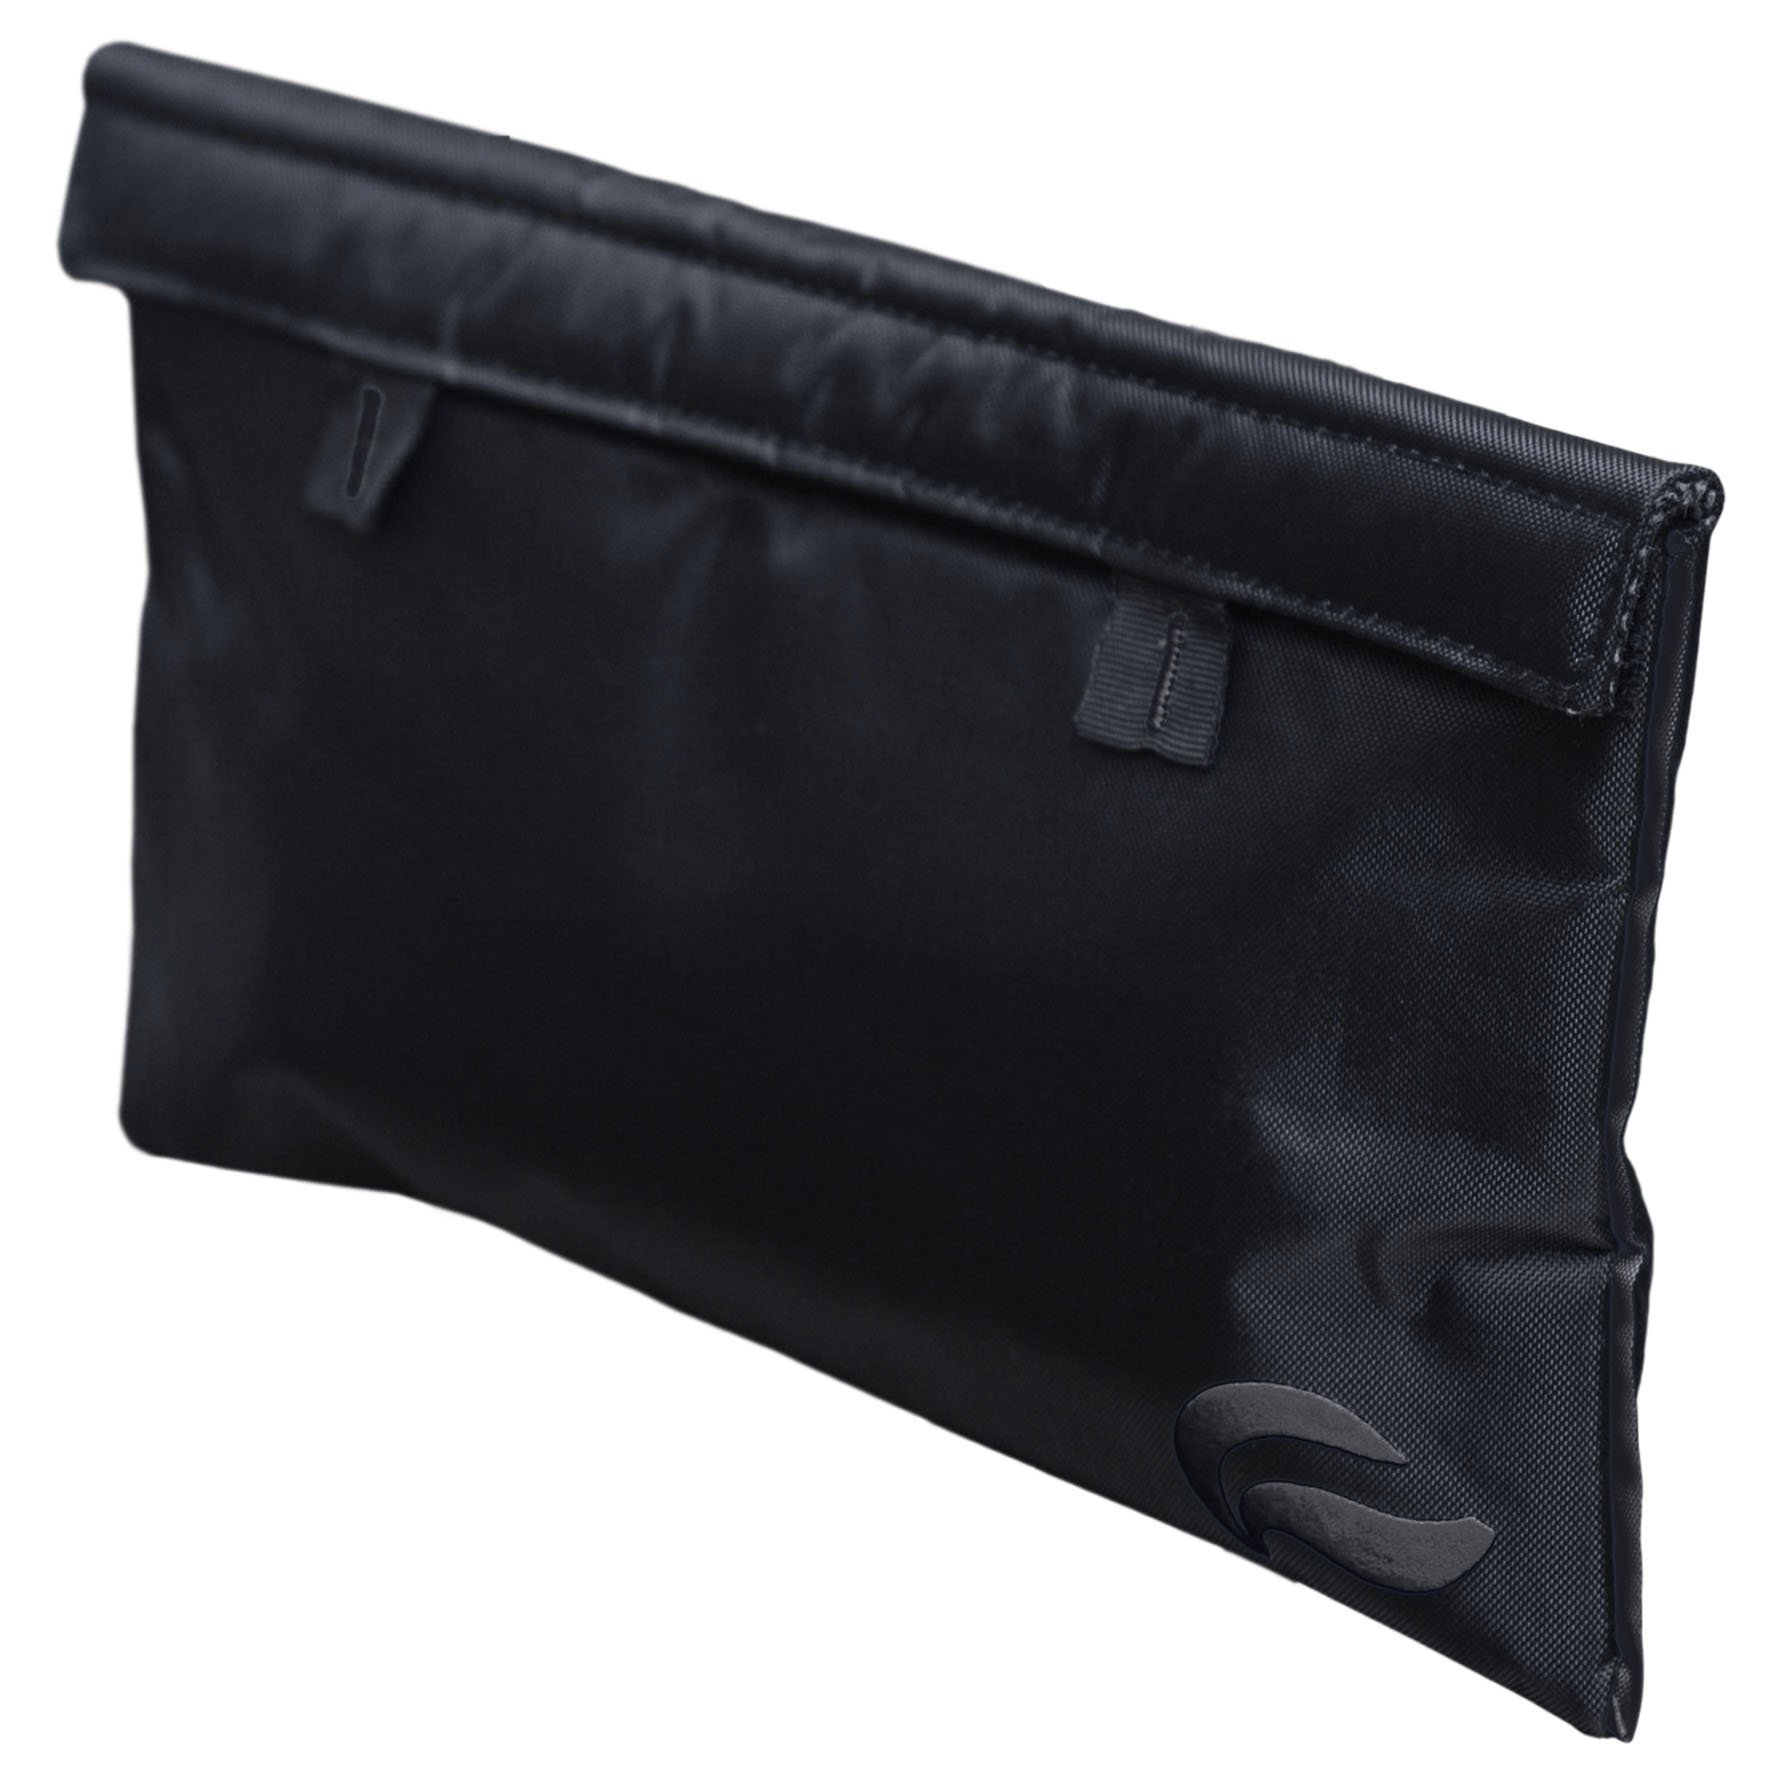 Skunk Mr Slick Smell Proof Bag 11''x6'' (black/black)